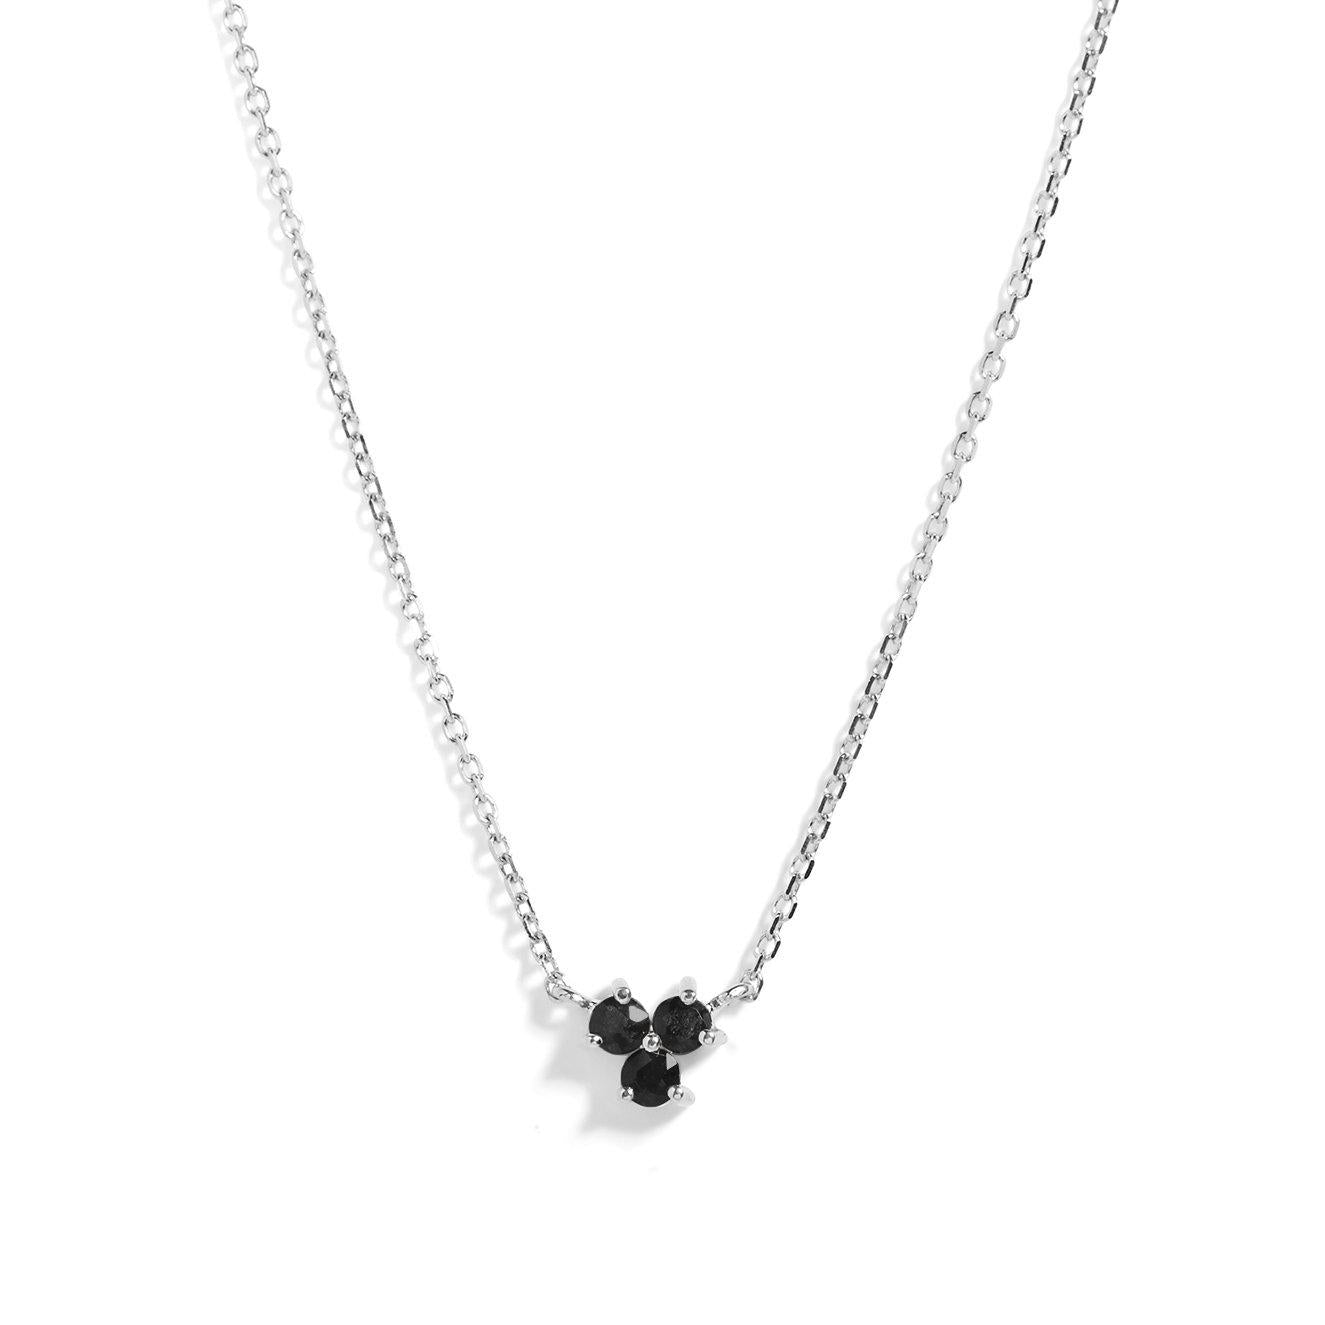 The Trio Spinel Necklace in Silver